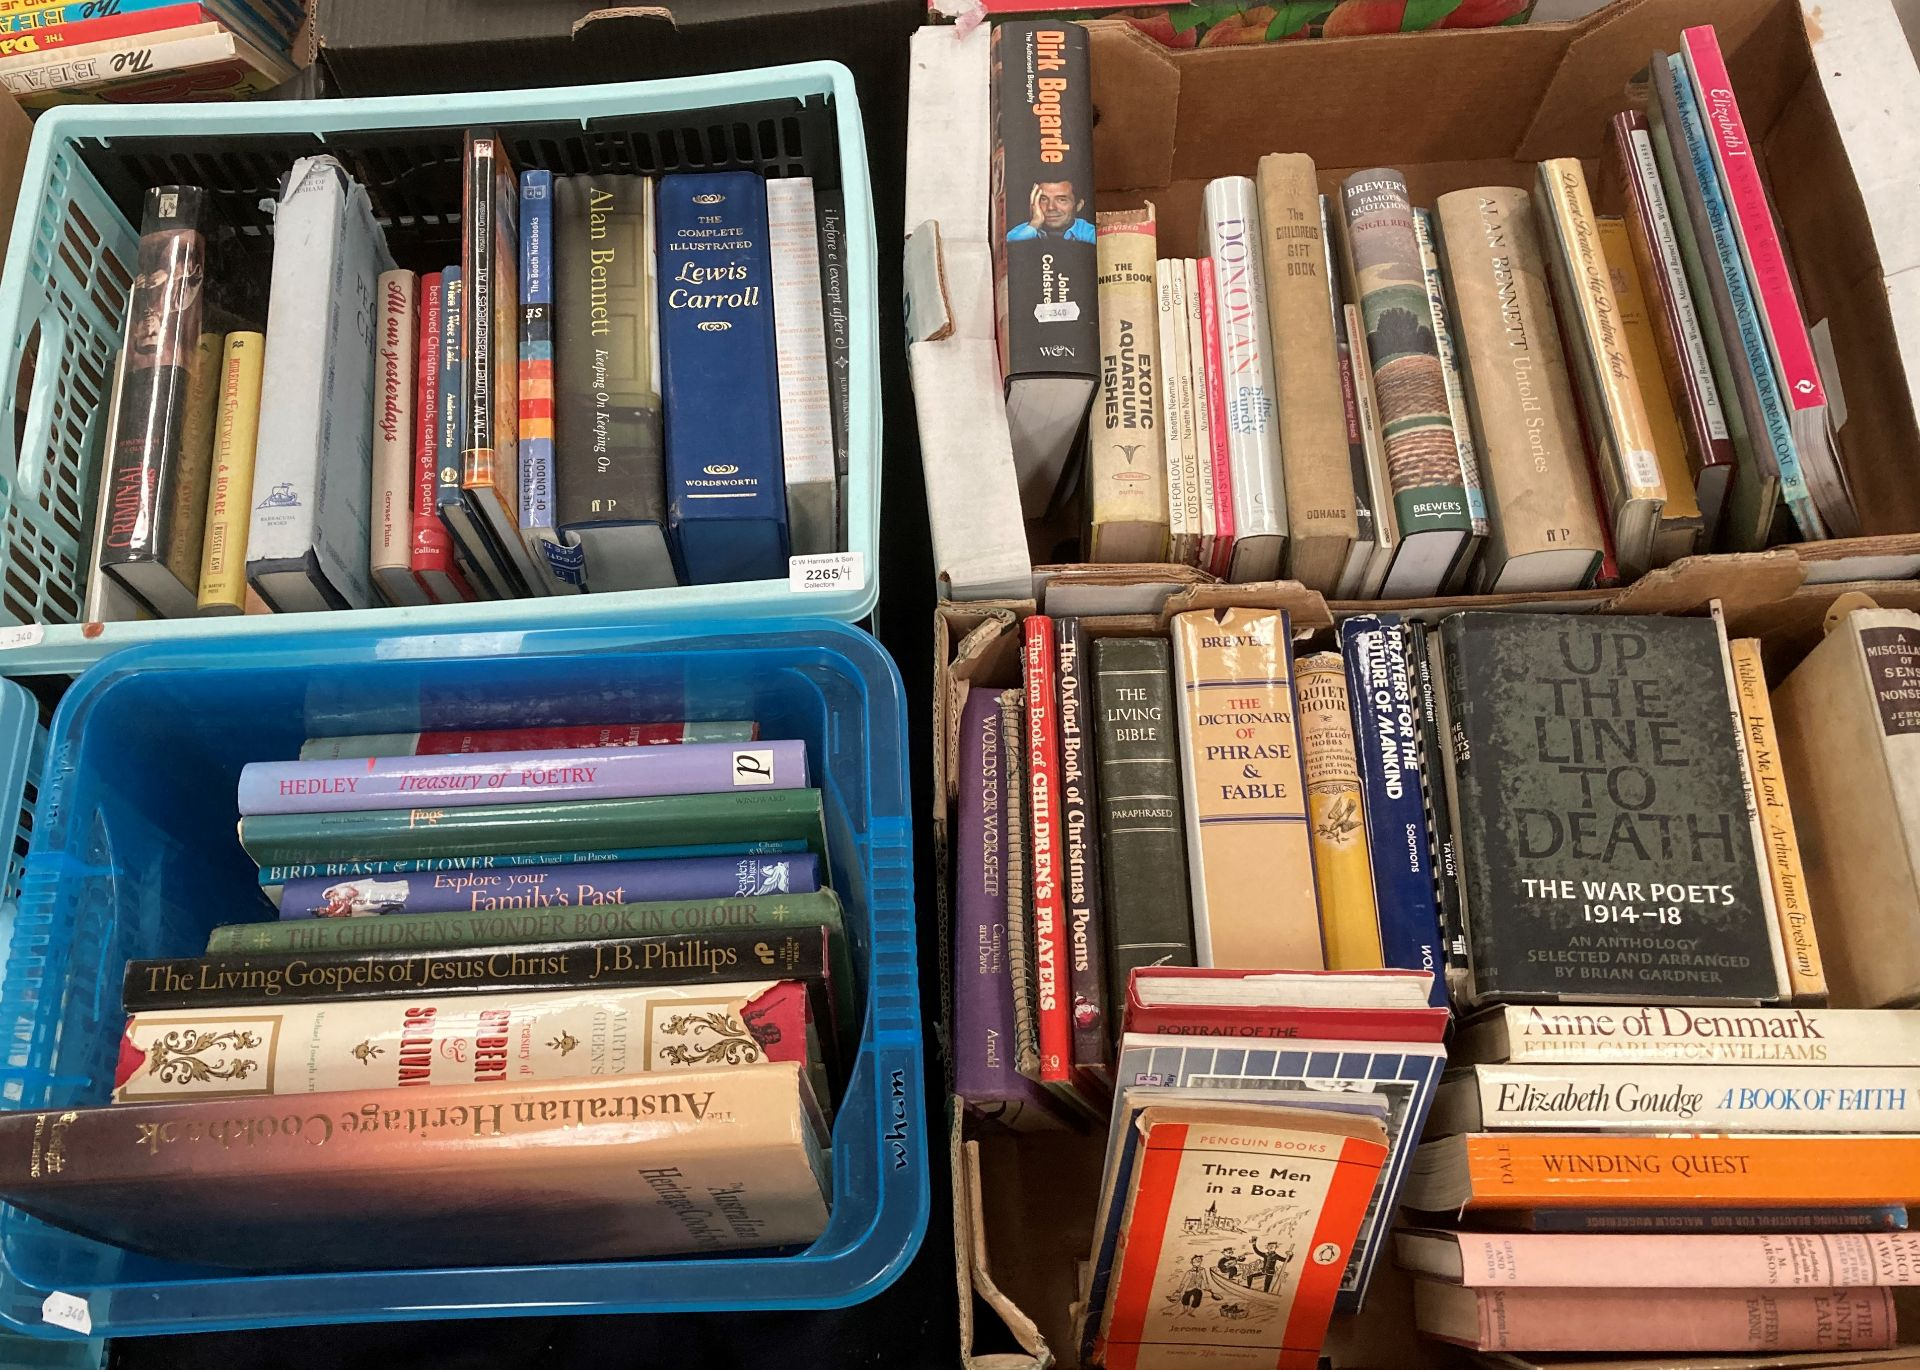 Contents to four boxes books on English Literature, poetry, biographies, religion etc.